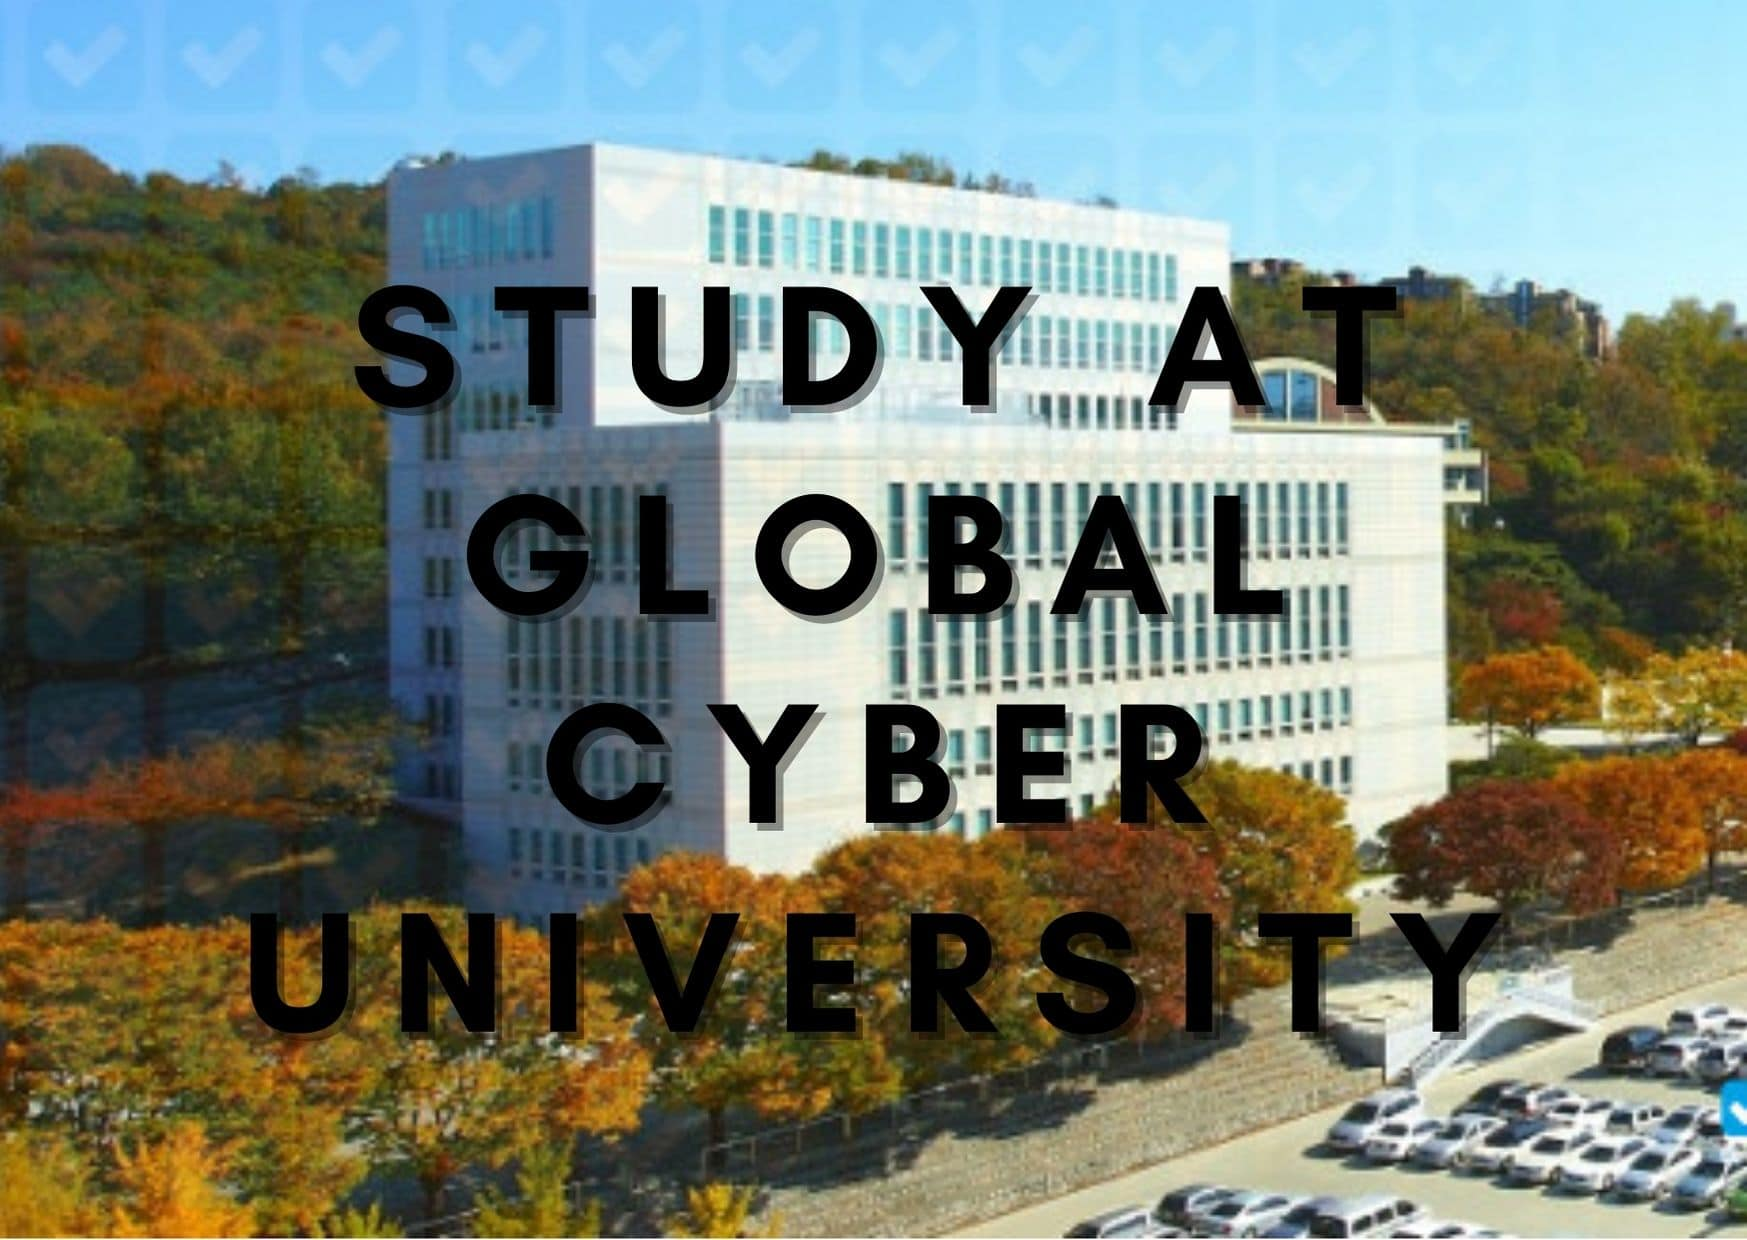 Study at Global Cyber University: Courses, Admission, Tuition, Acceptance